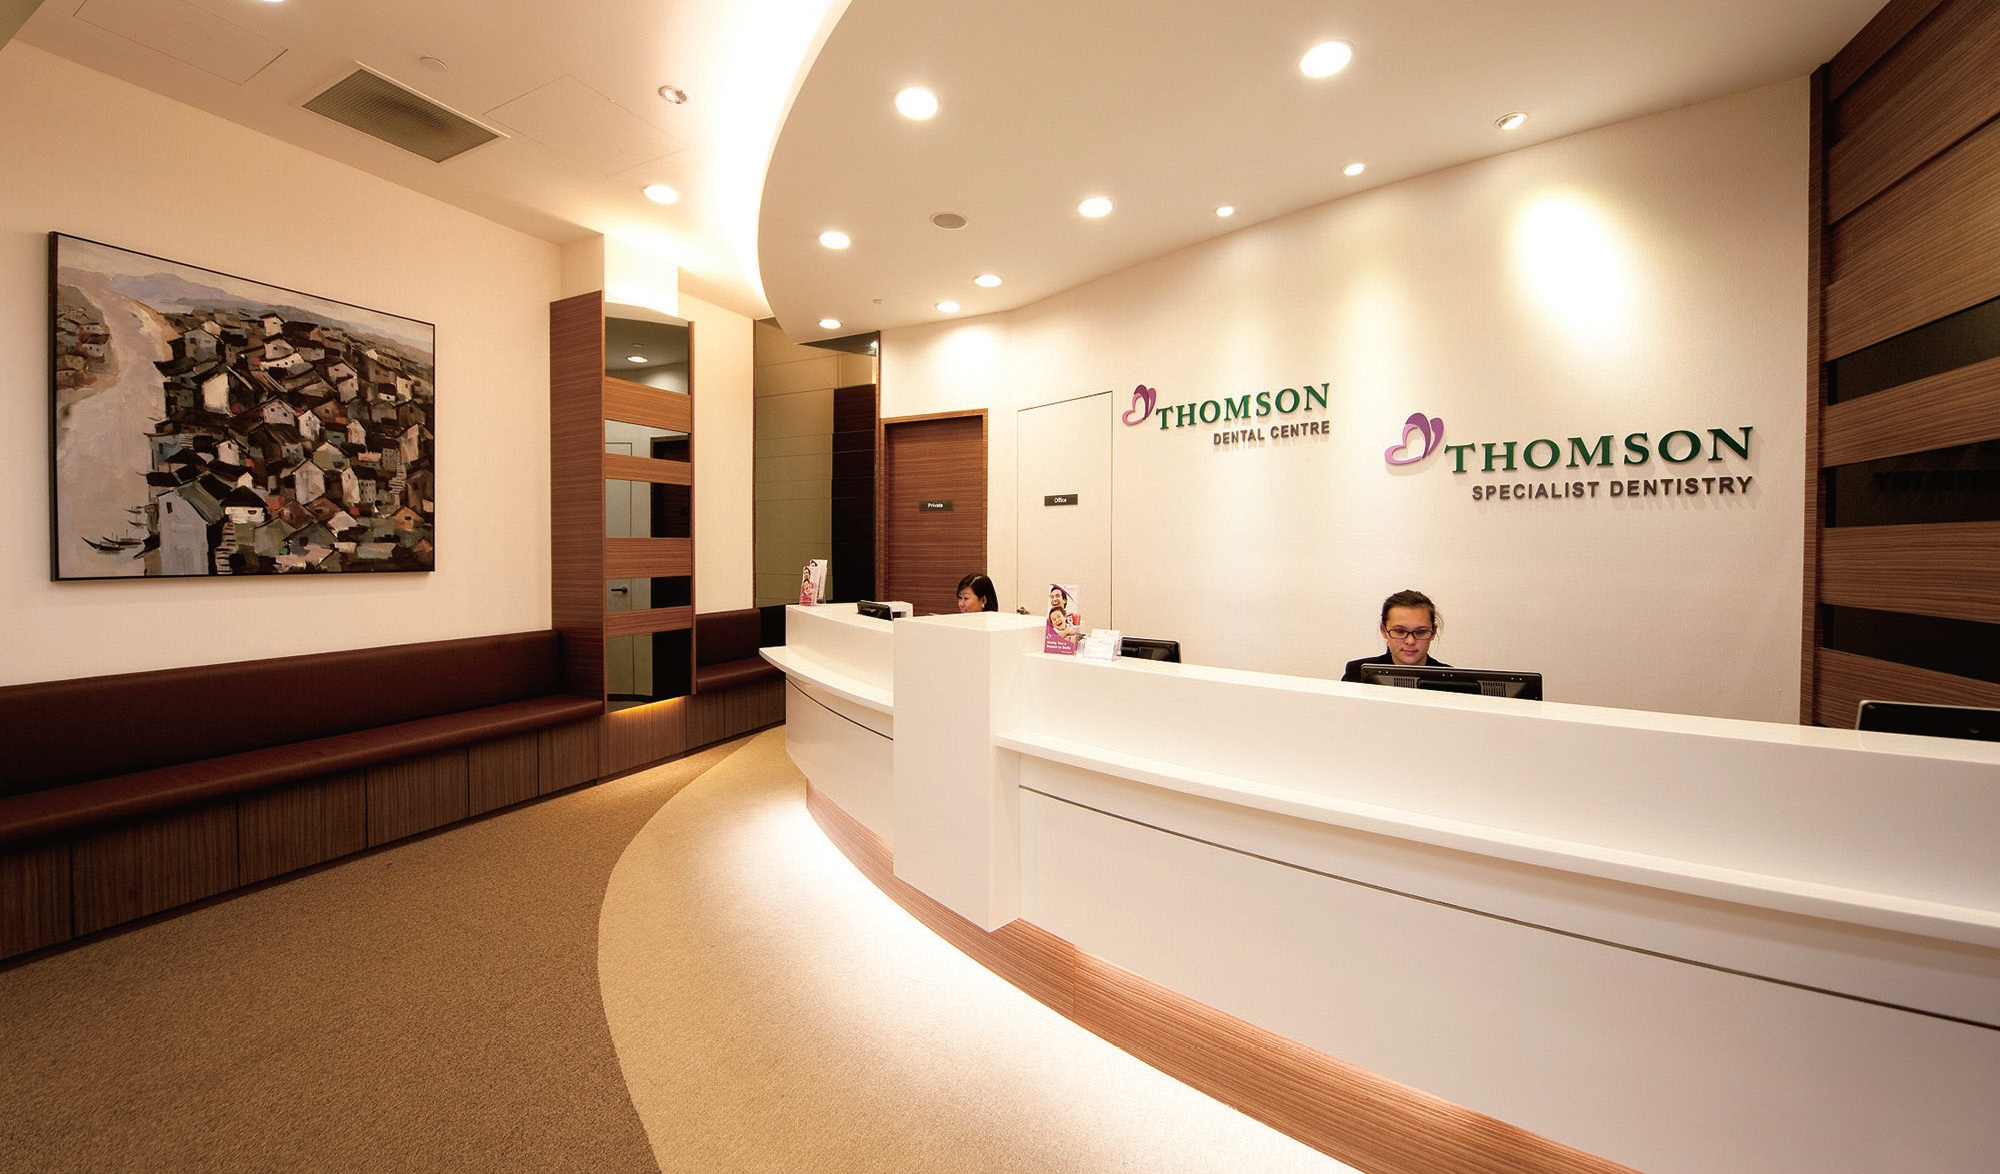 Thomson Dental Centre